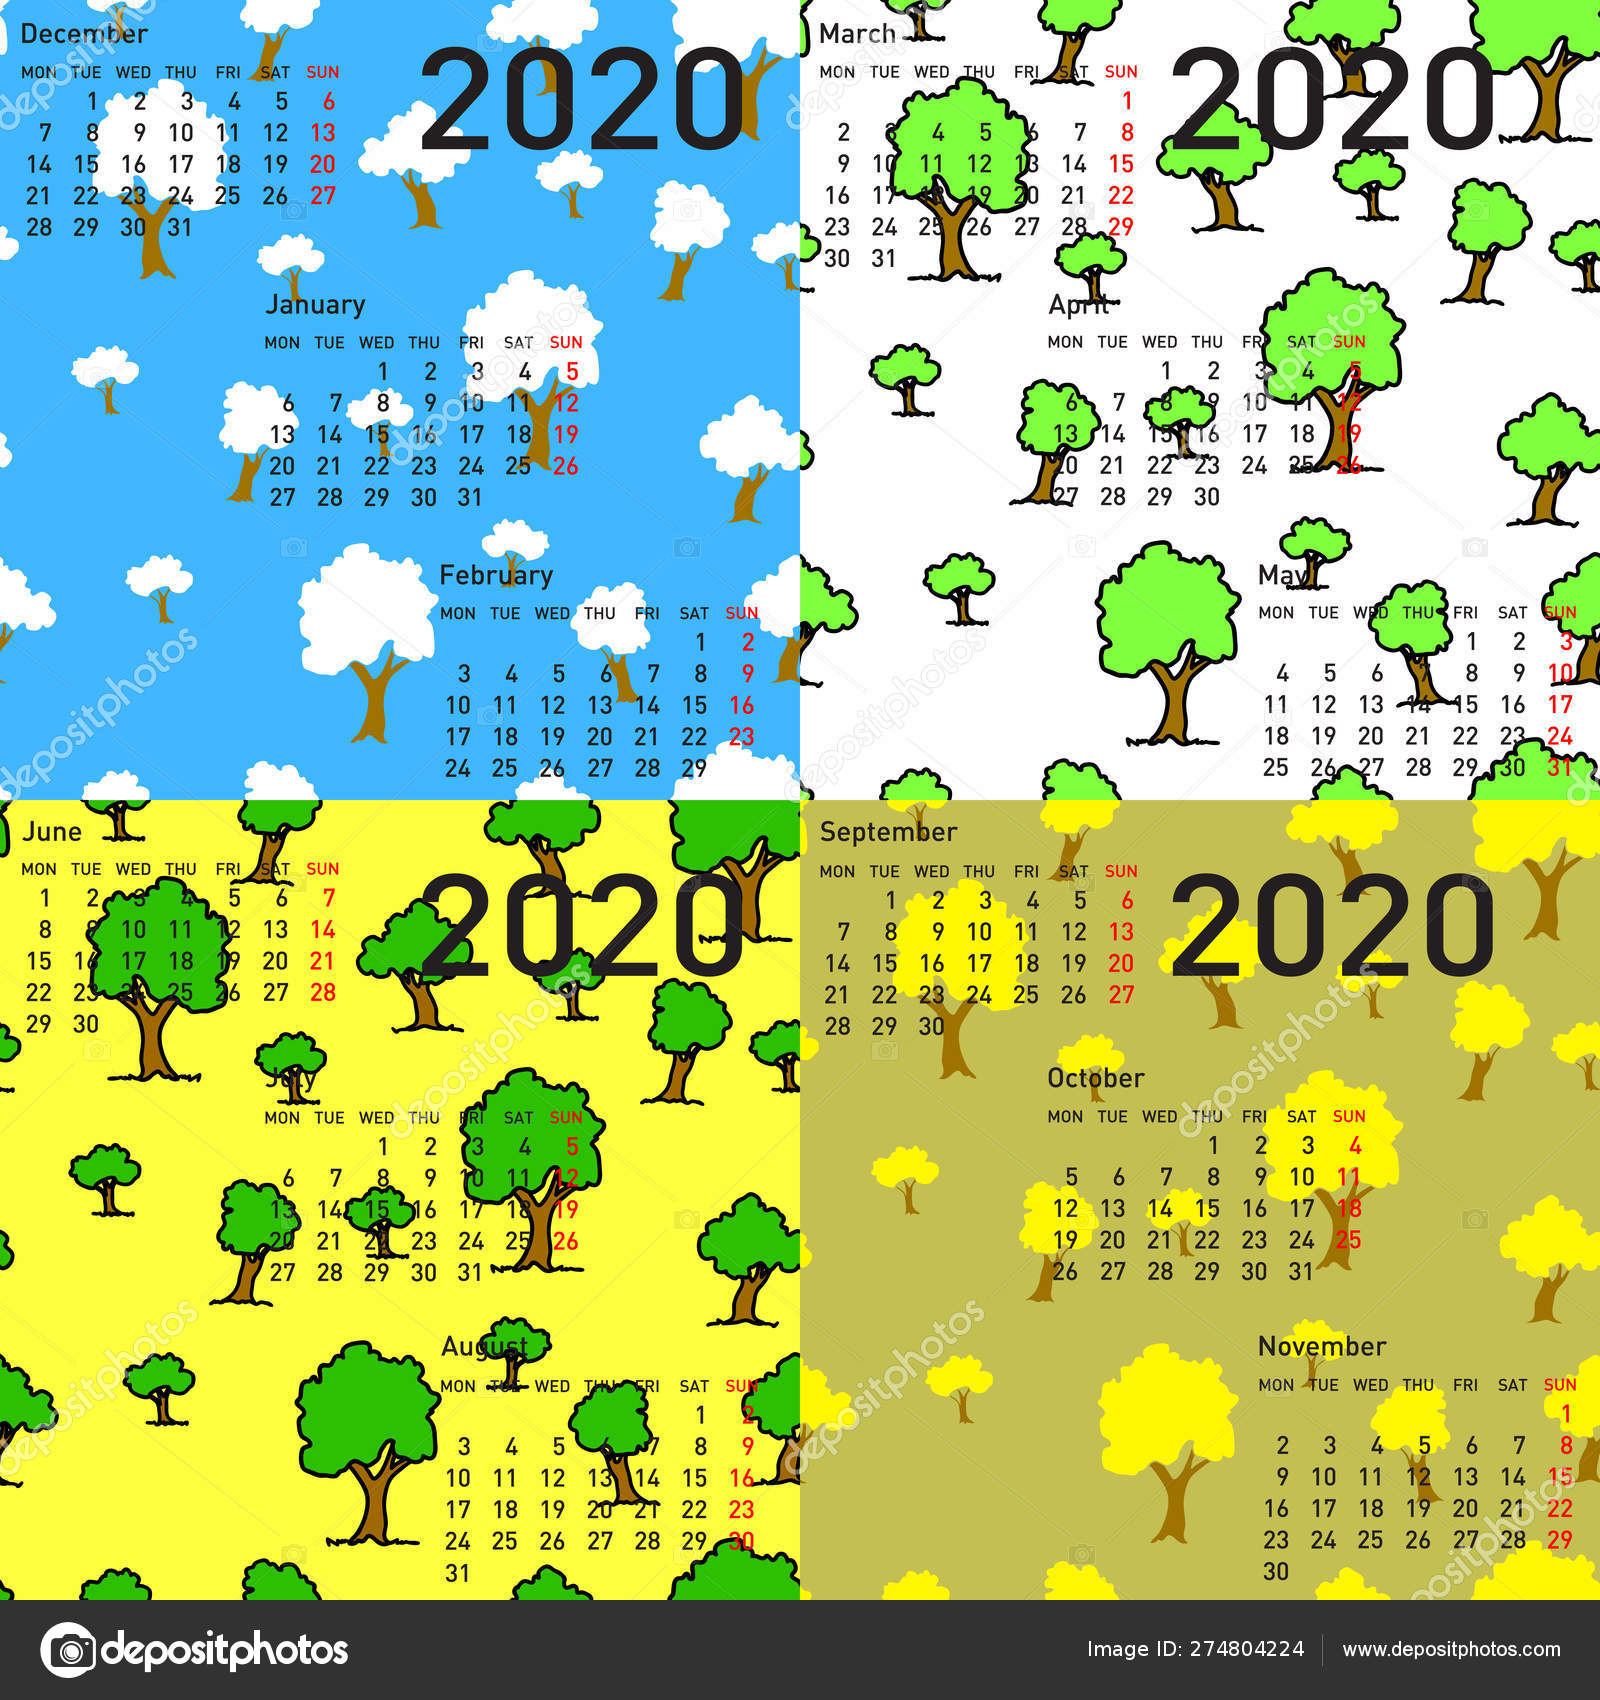 Seamless Wallpaper 2020 Calendar Days Of The Year — Векторное within Special Days Of The Year 2020